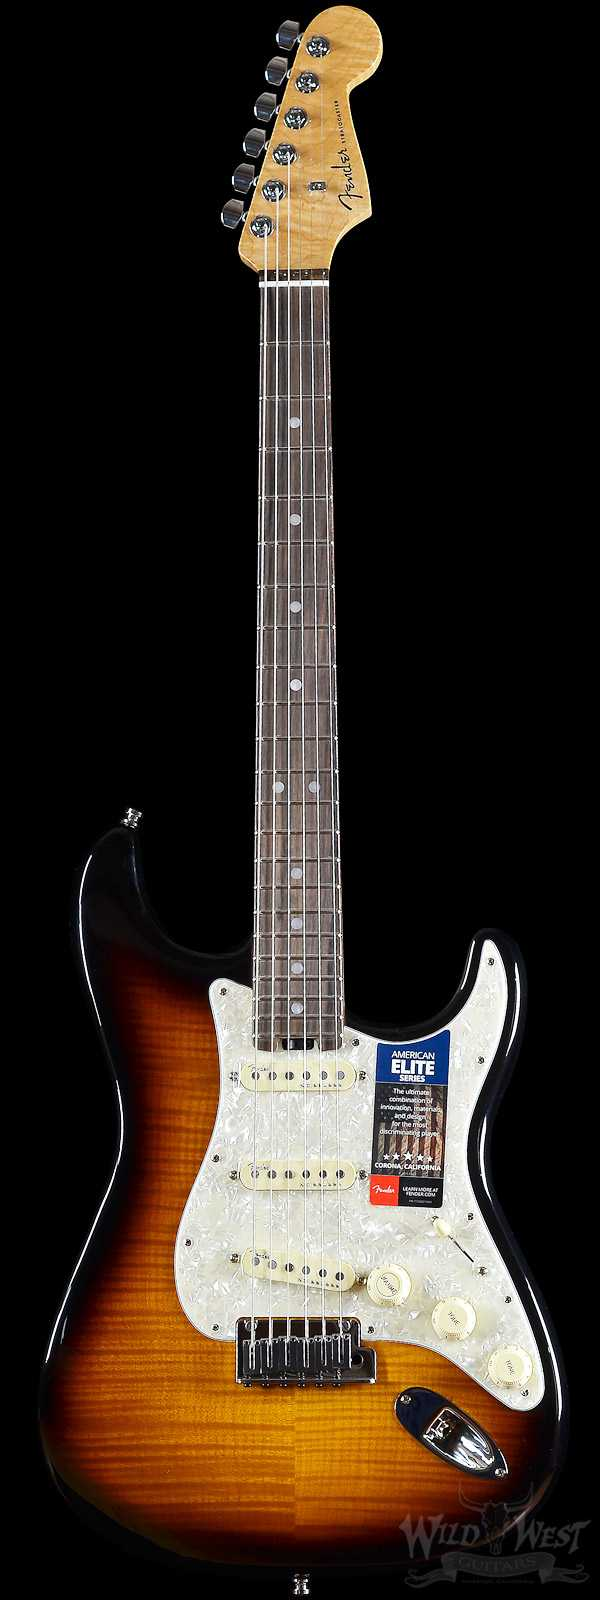 Fender Limited Edition Magnificent 7 American Lite Flame Top Stratocaster Two Color Sunburst